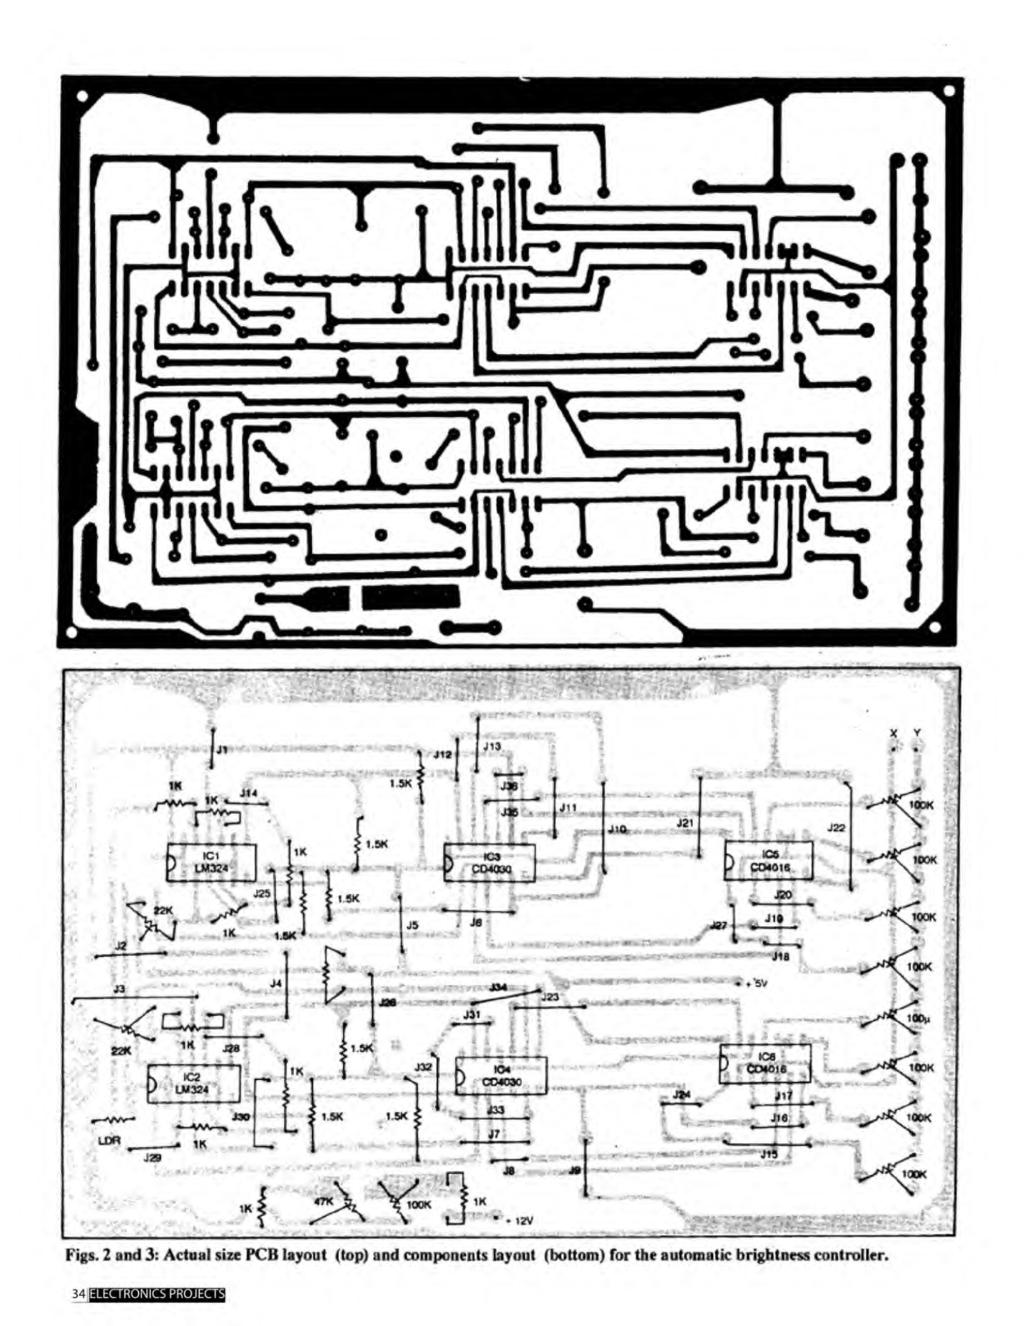 A Compilation Of 102 And Circuit Ideas For Construction Projects Lm324 1khz Bandpass Filter Electronic Circuits Schematics Diagram Figs 2 3 Actual Size Pcb Layout Top Components